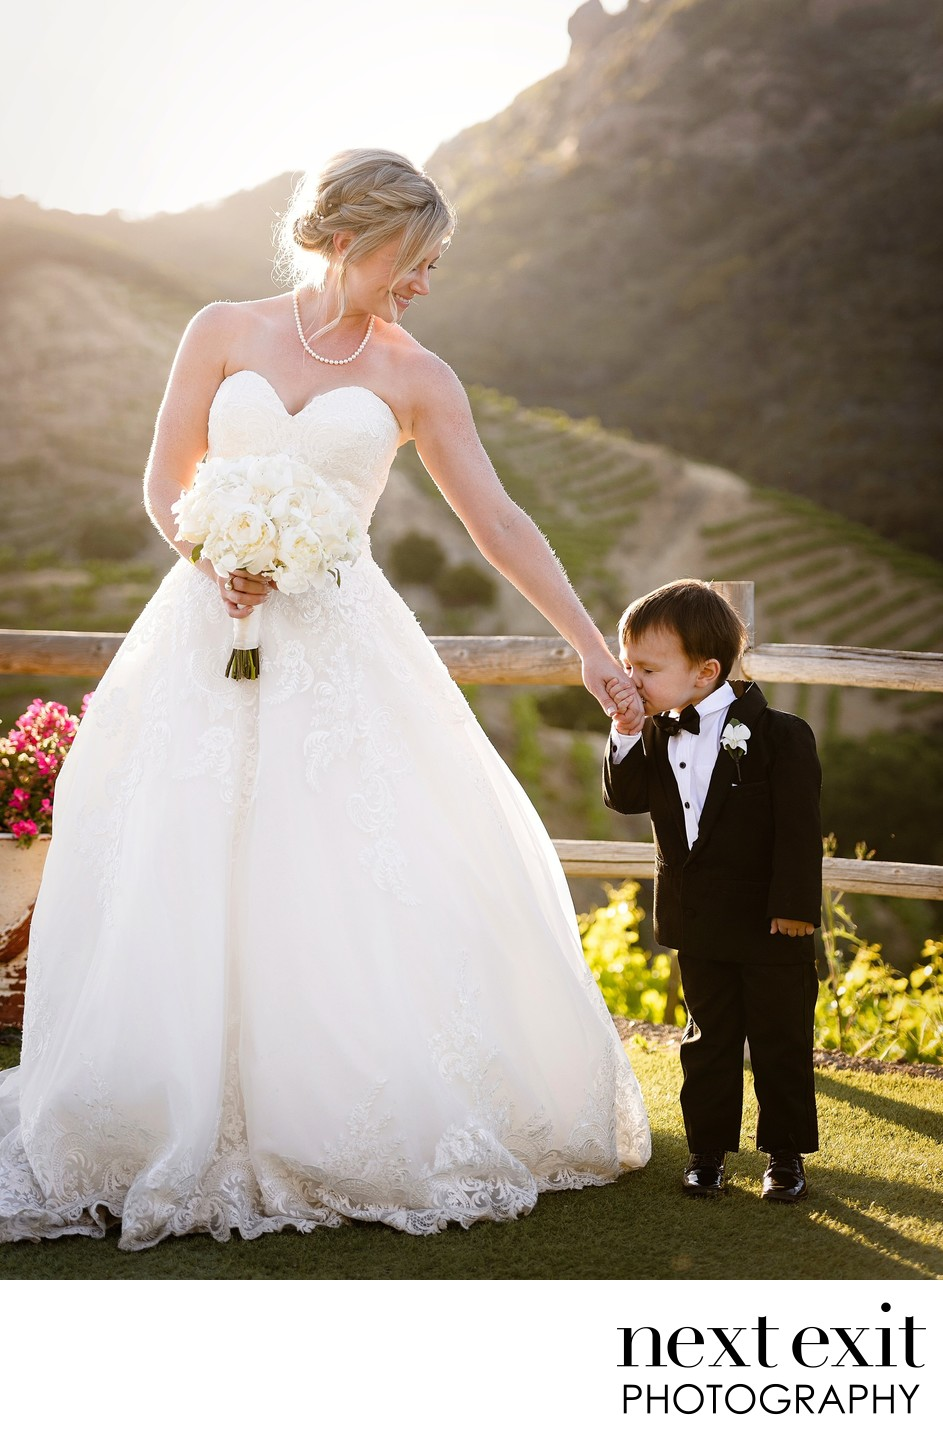 Top Saddlerock Ranch Wedding Photographer - Los Angeles Wedding, Mitzvah & Portrait Photographer - Next Exit Photography